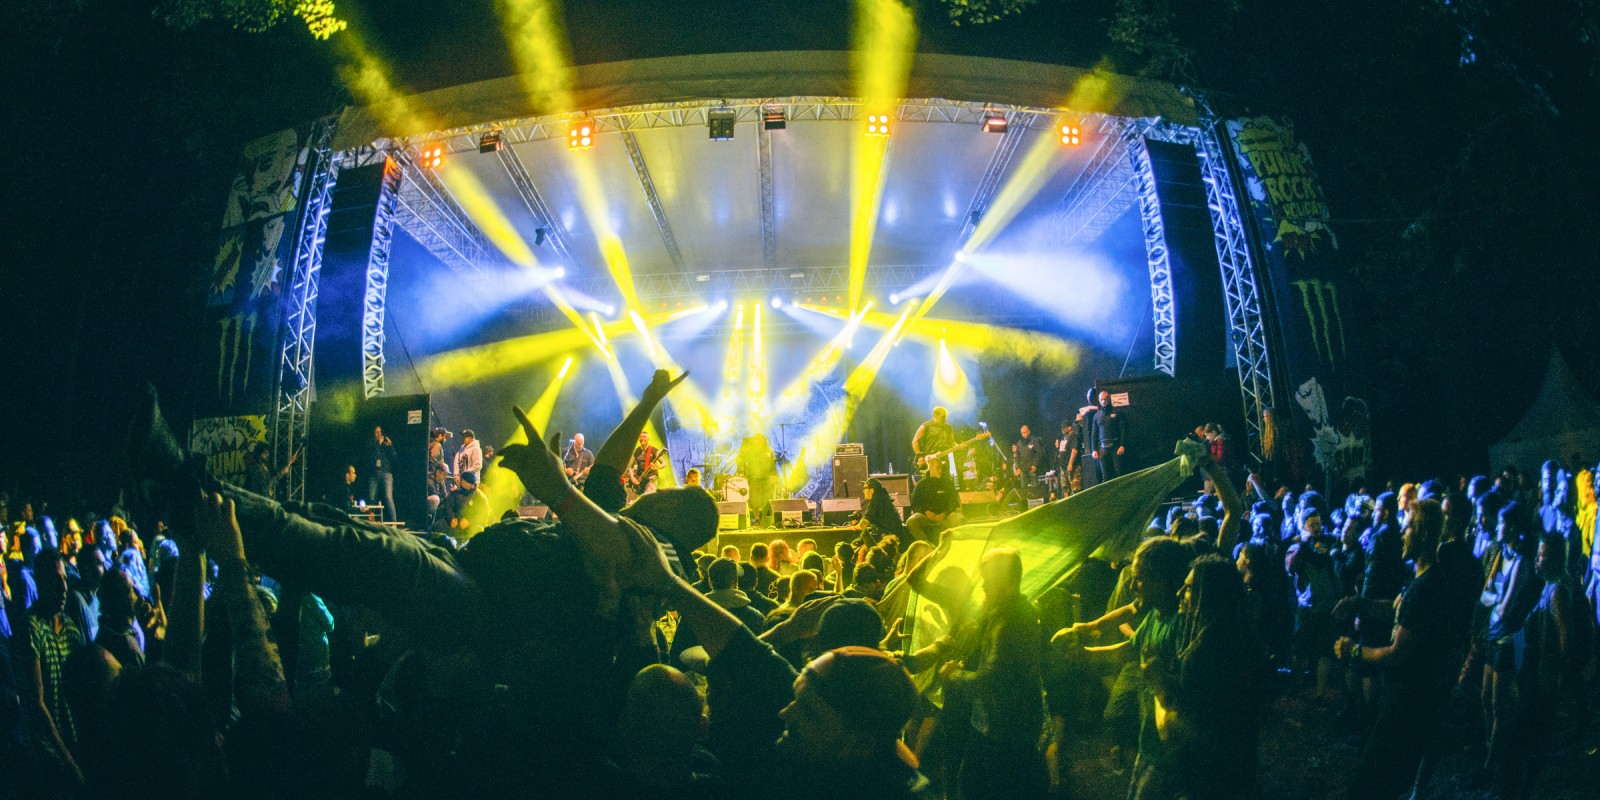 Music festival Punk Rock Holiday 1.6 in Slovenia, Tolmin from 9.8.2016. - 12.08.2016.